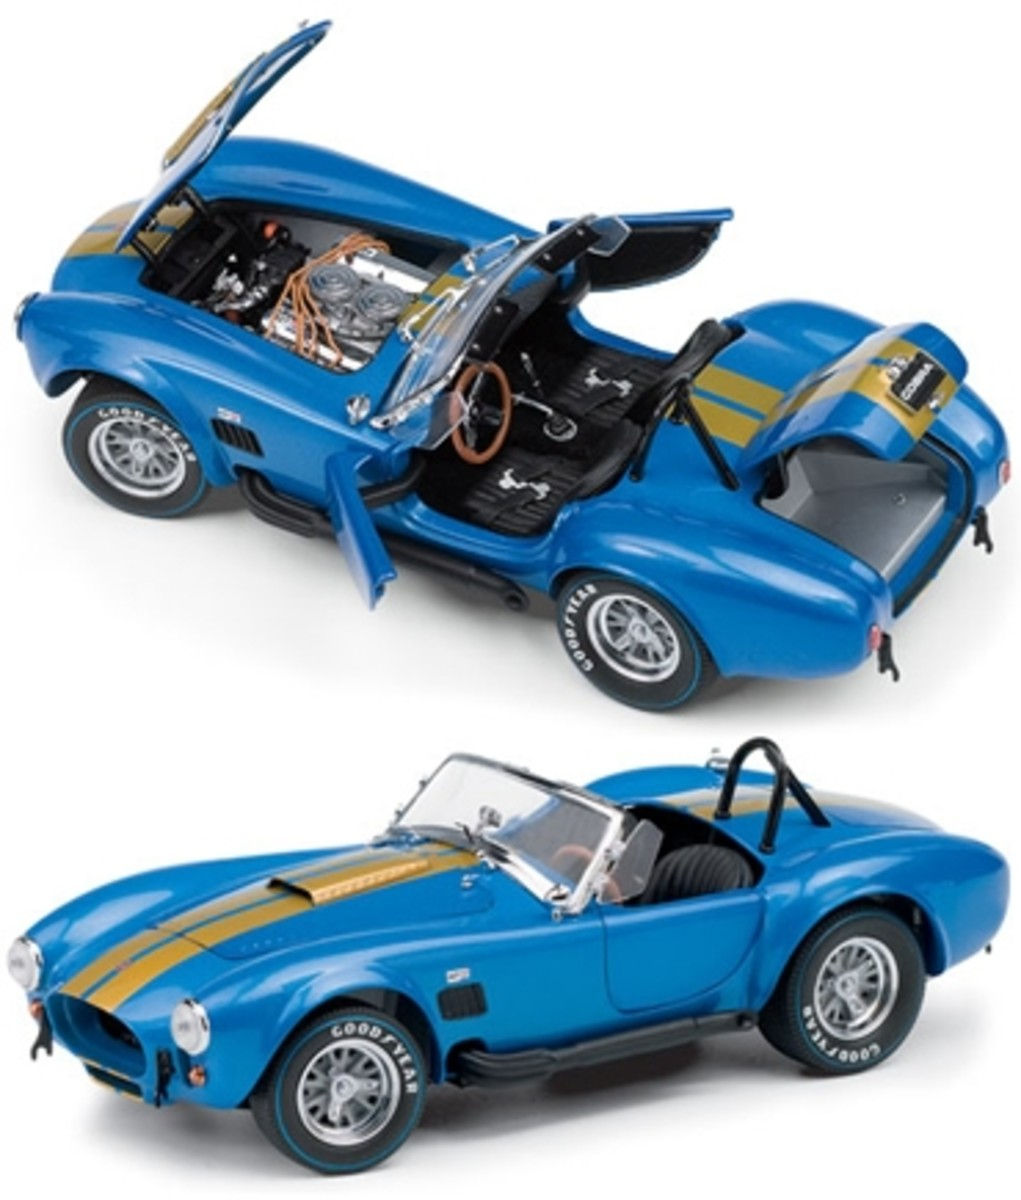 1966 Shelby Cobra 427 S/C Blue Diecast by Franklin Mint